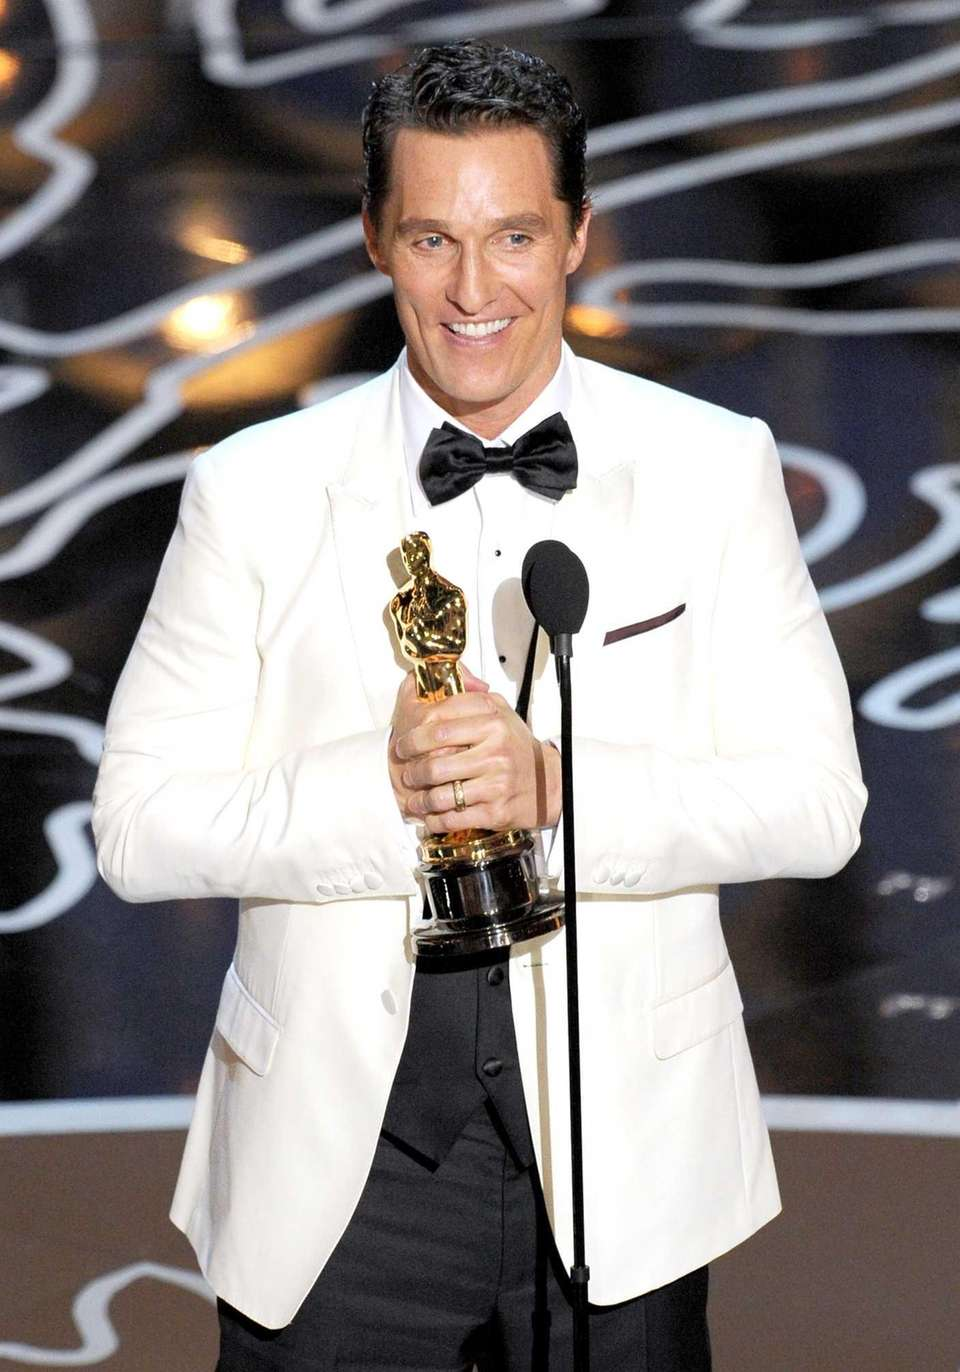 Matthew McConaughey accepts the Oscar statuette for Best